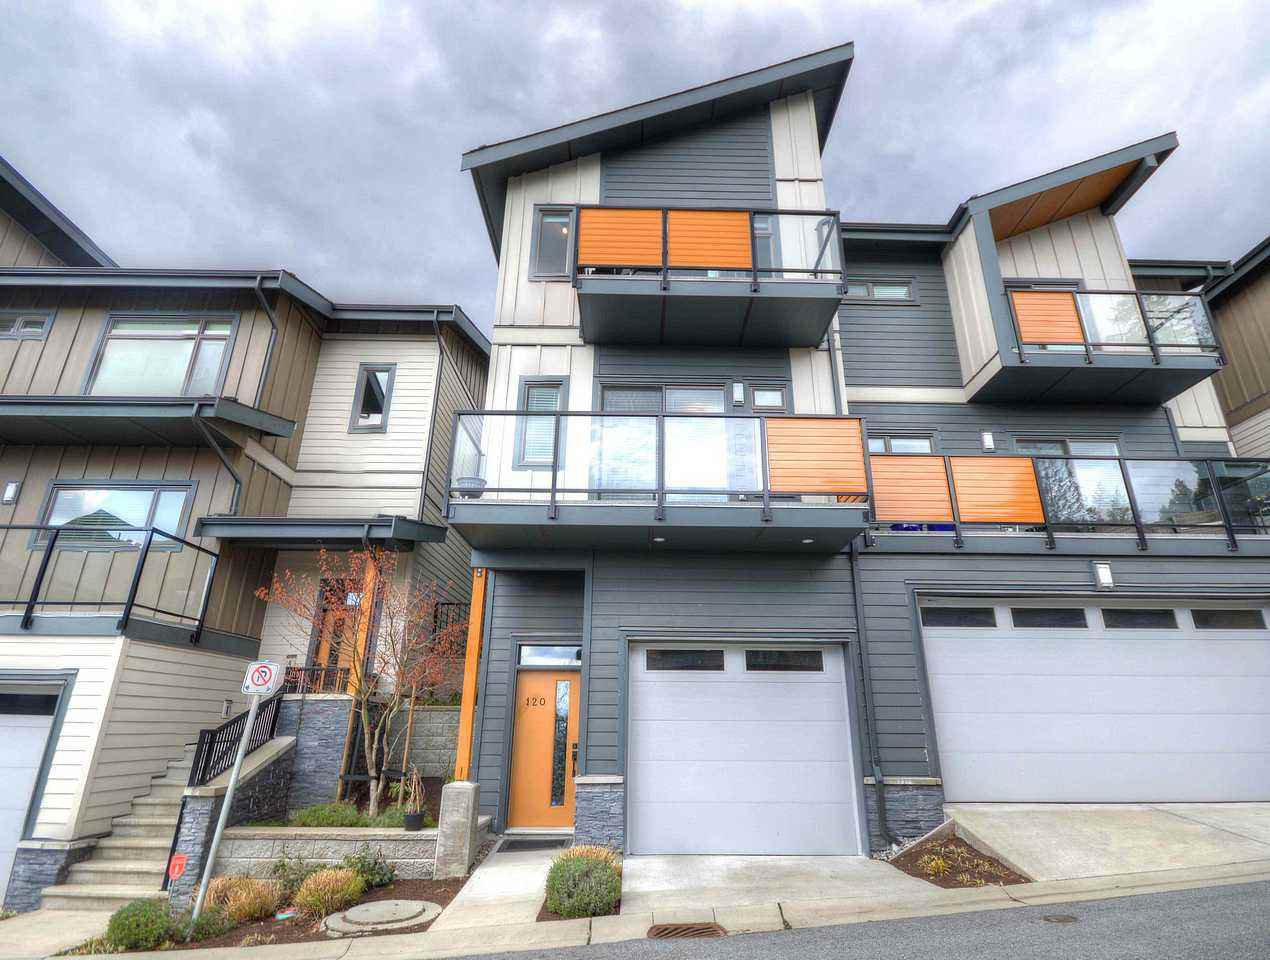 Main Photo: 120 3525 CHANDLER Street in Coquitlam: Burke Mountain Townhouse for sale : MLS®# R2449274